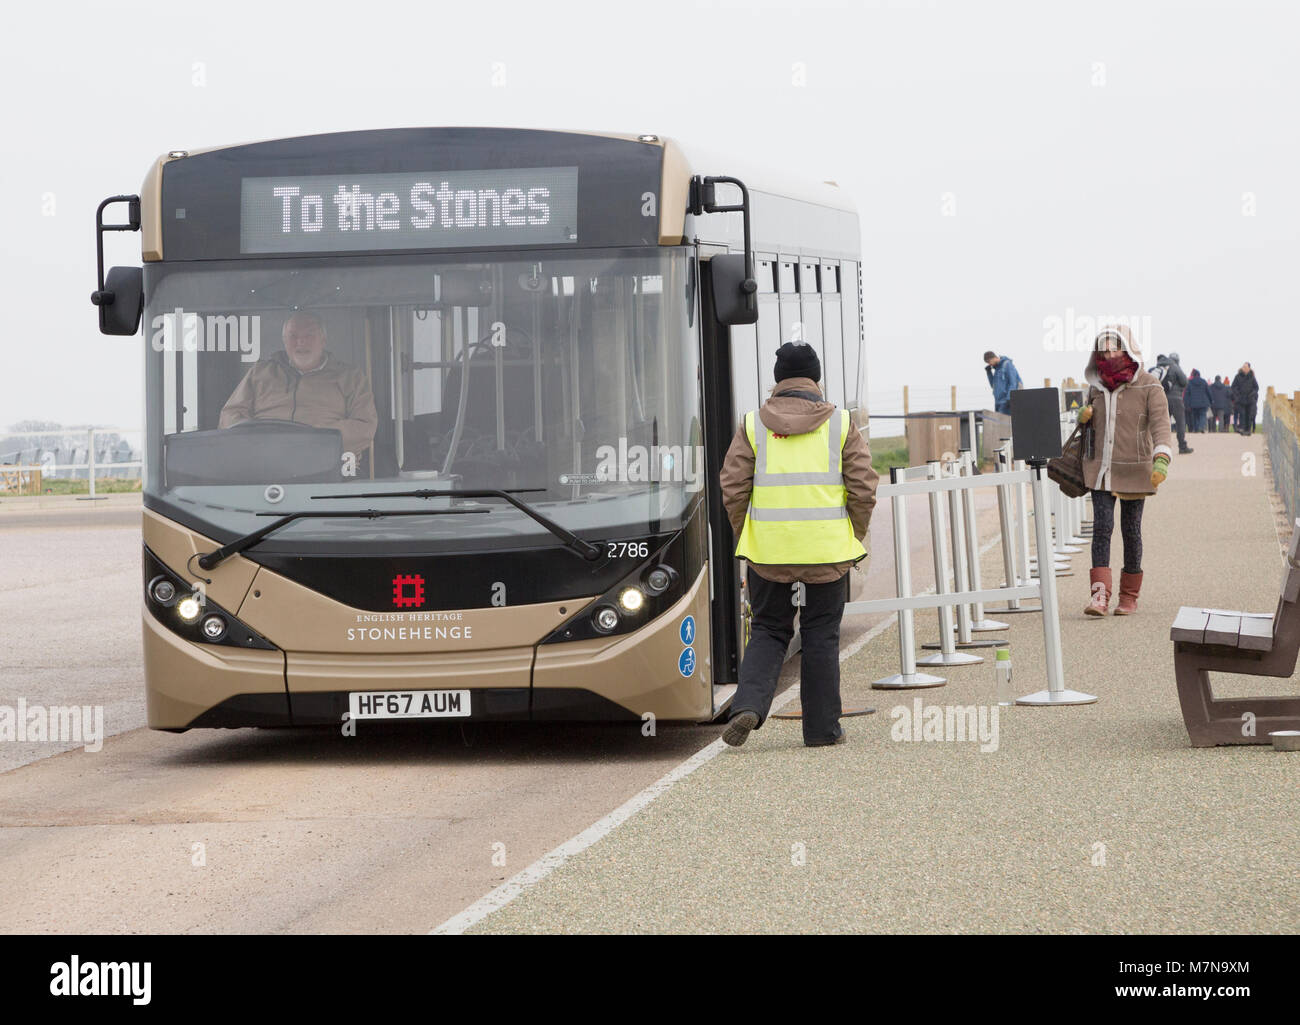 Visitor bus transport to and from the Stones, Stonehenge, Wiltshire, England, UK - Stock Image